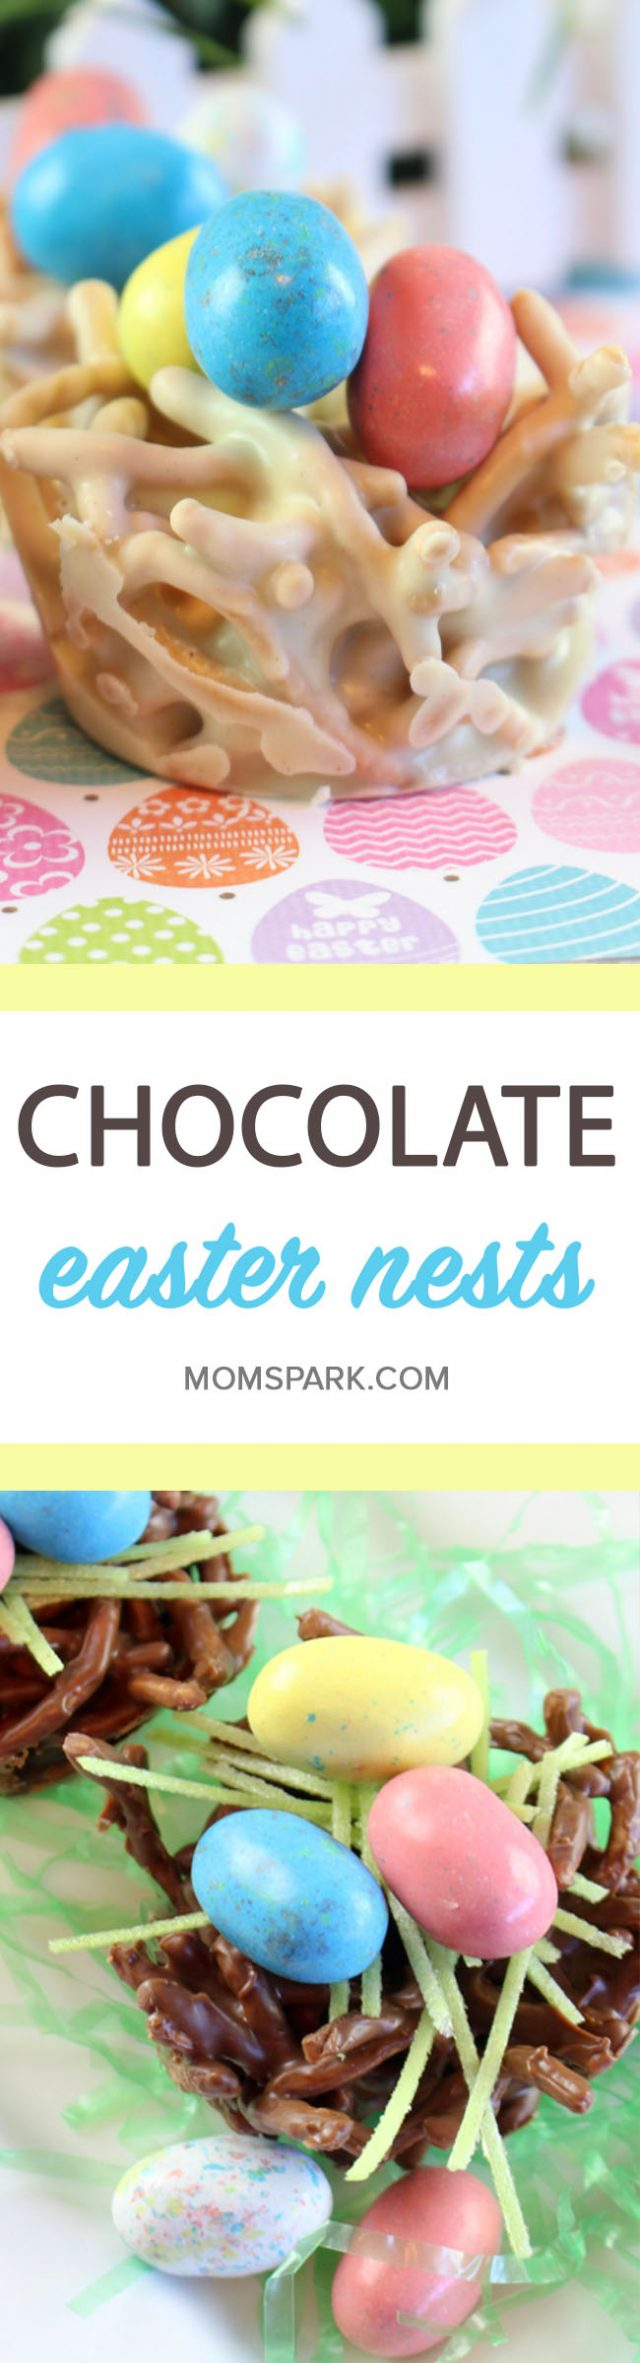 Chocolate Easter Candy Nests Recipe